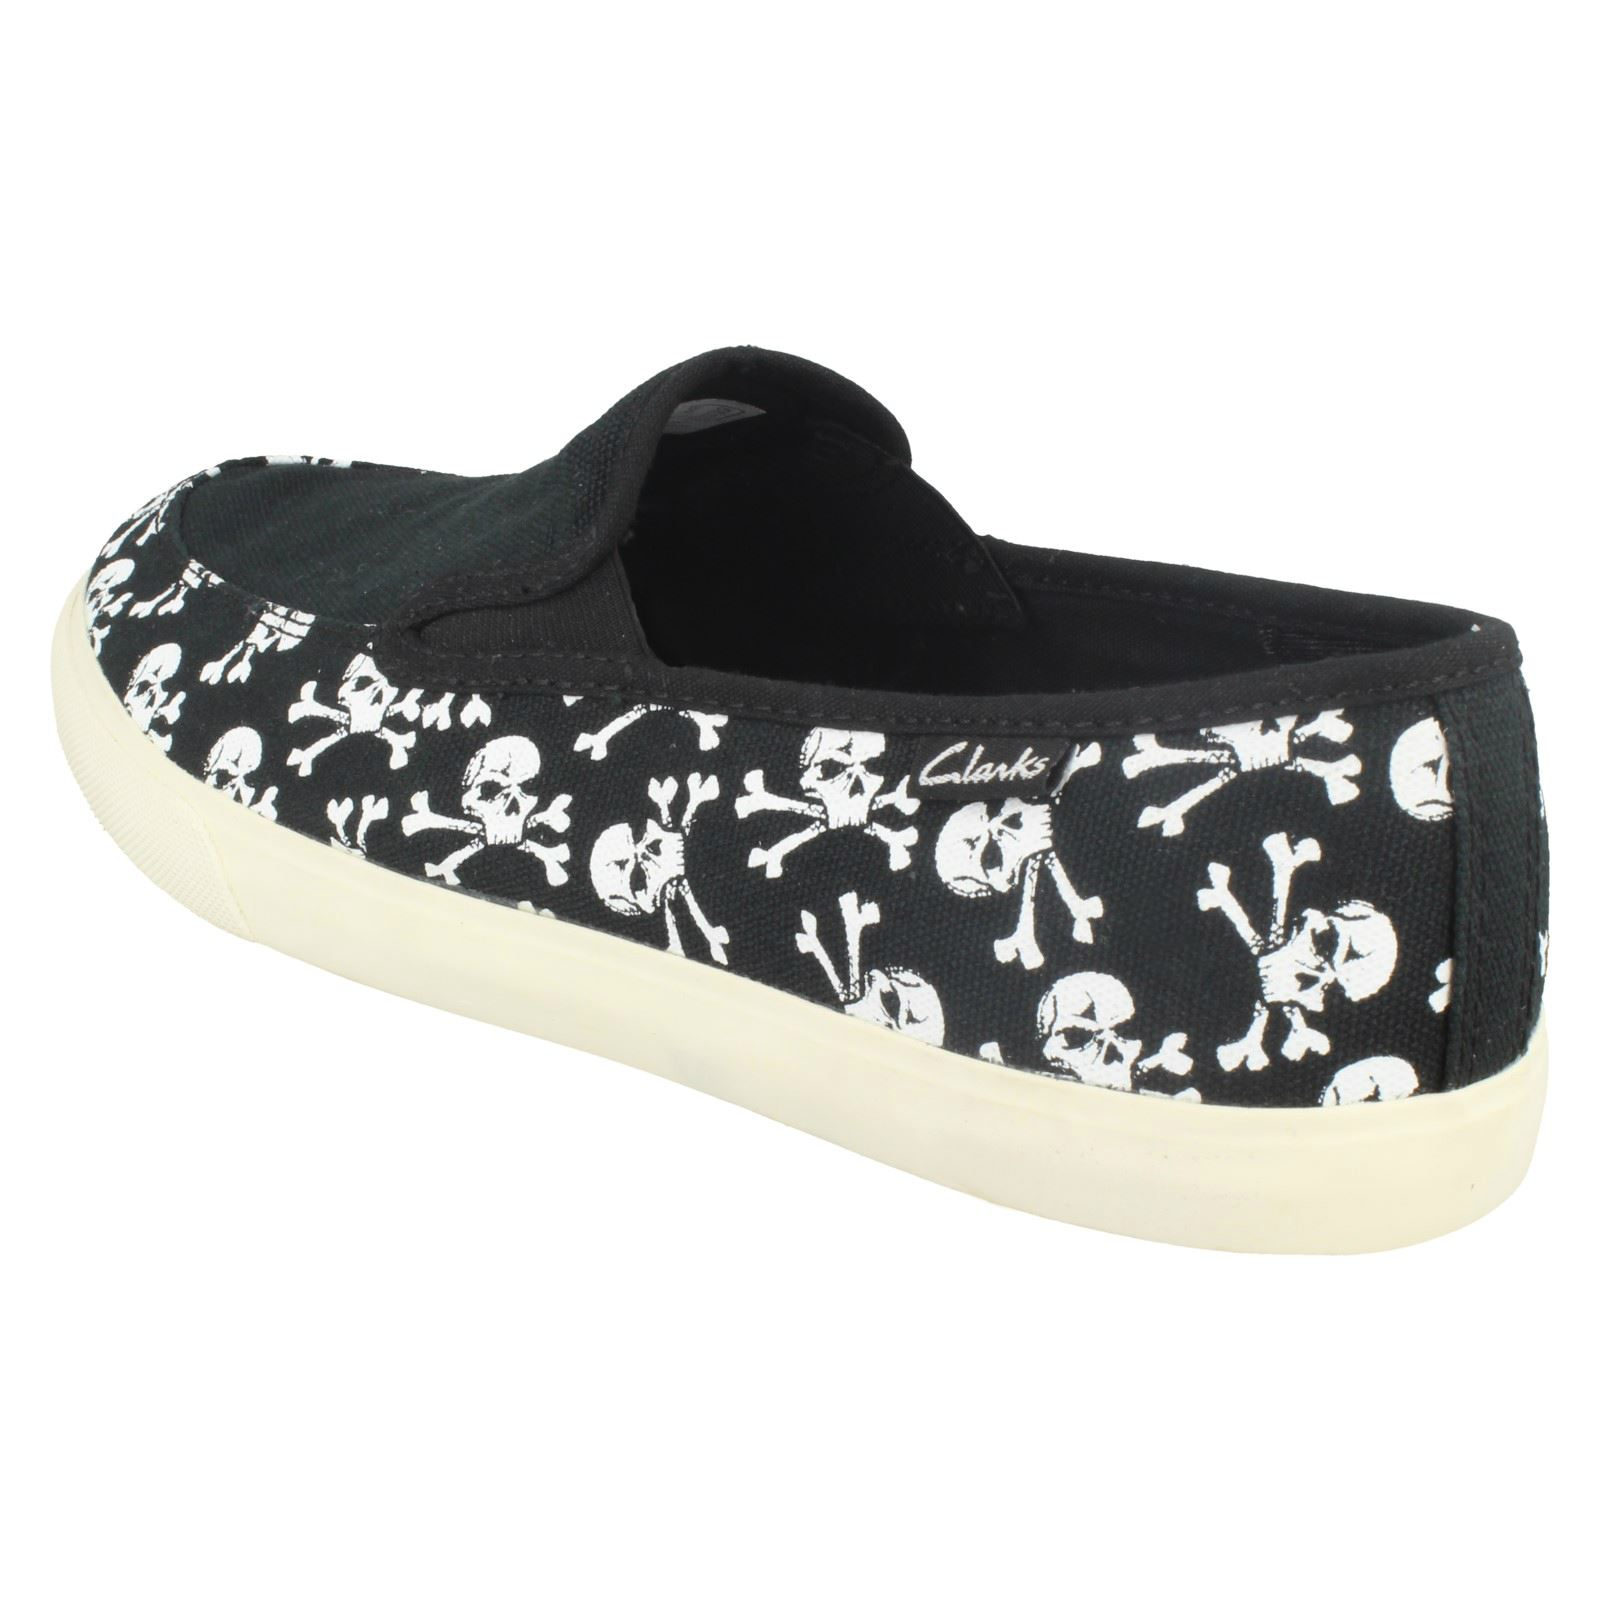 Sand' Negro 'club Casual Niños Clarks Shoes xRYqIBAU